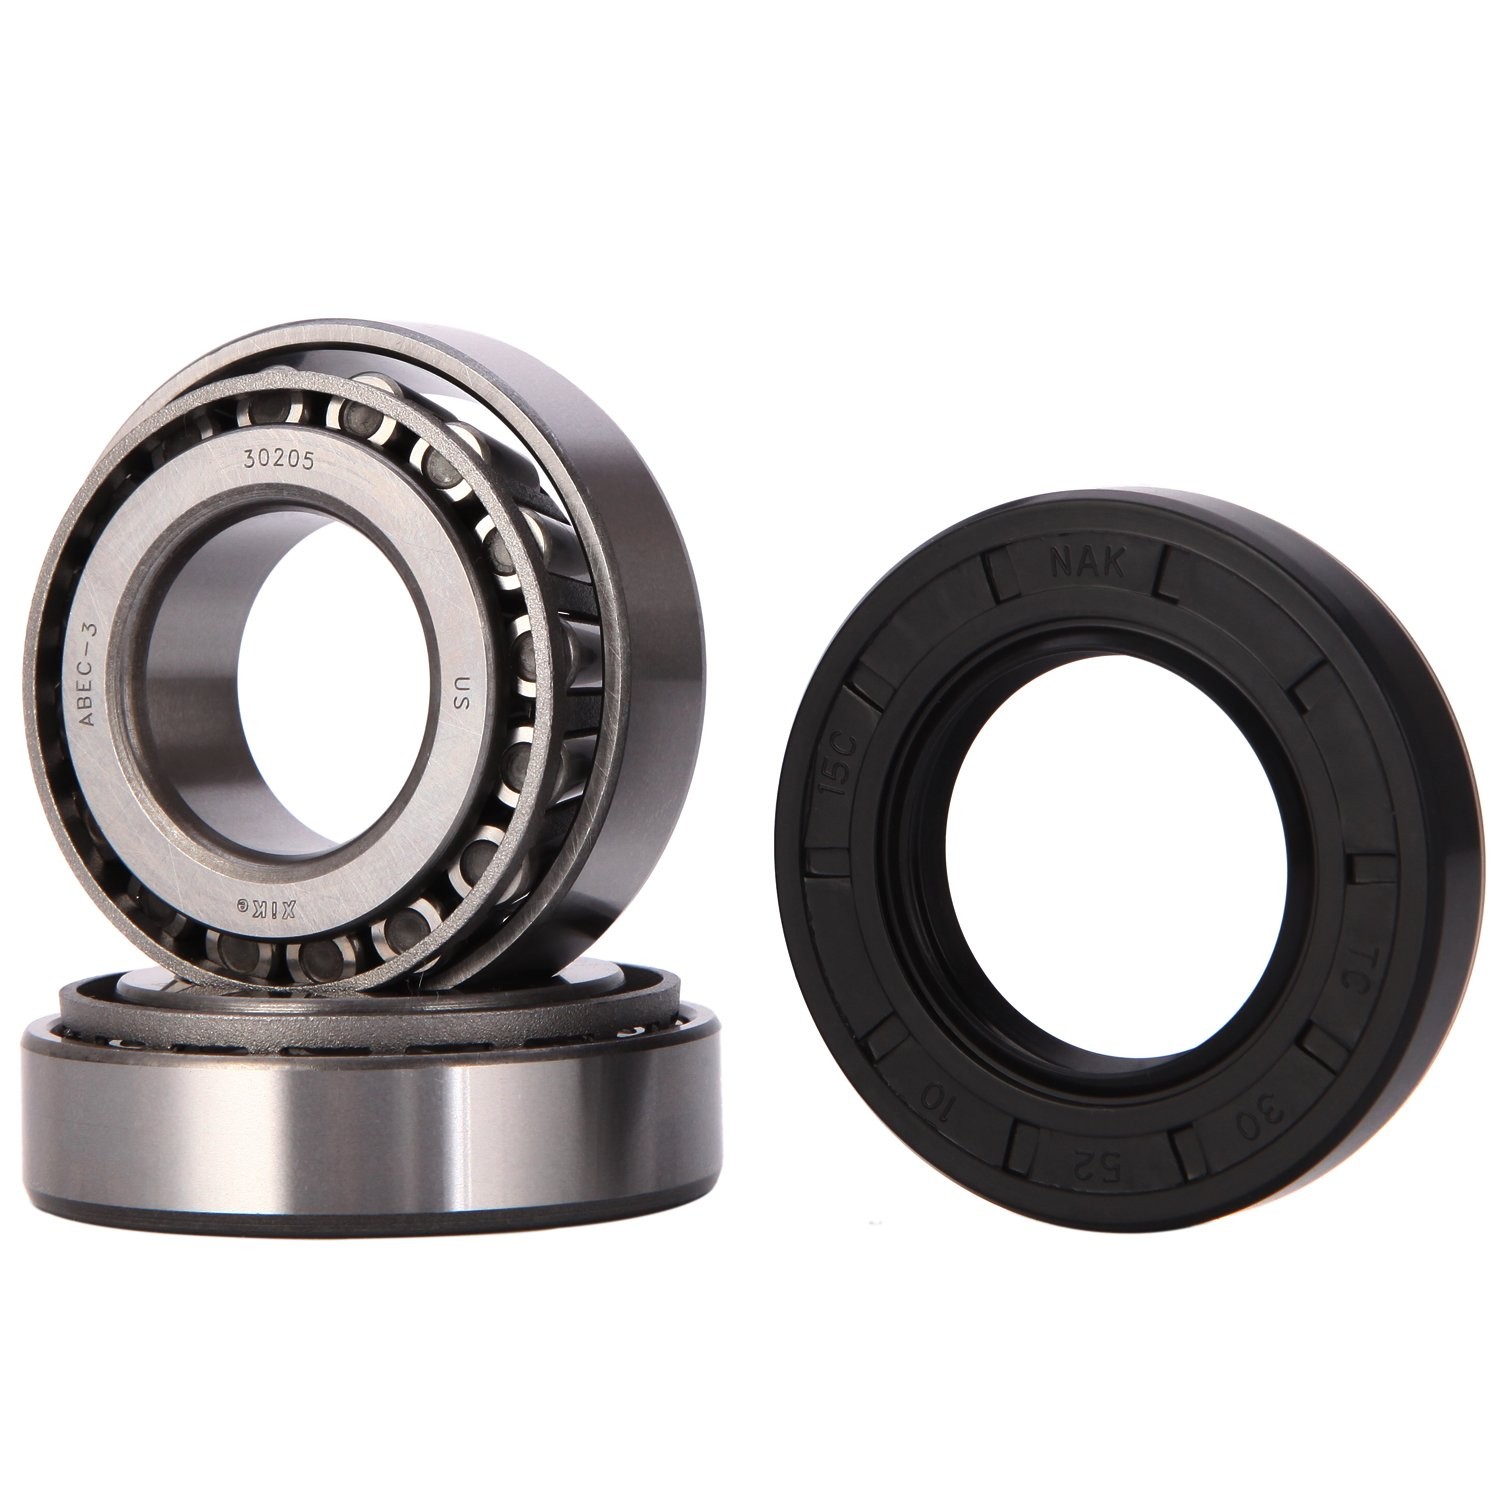 XiKe 1 Set Fits for 25mm Axles Trailer Wheel Hub Bearings Kit, 30205 Bearings and Seal TC 30x52x10mm, Rotary Quiet High Speed and Durable for Tapered Roller Bearings.